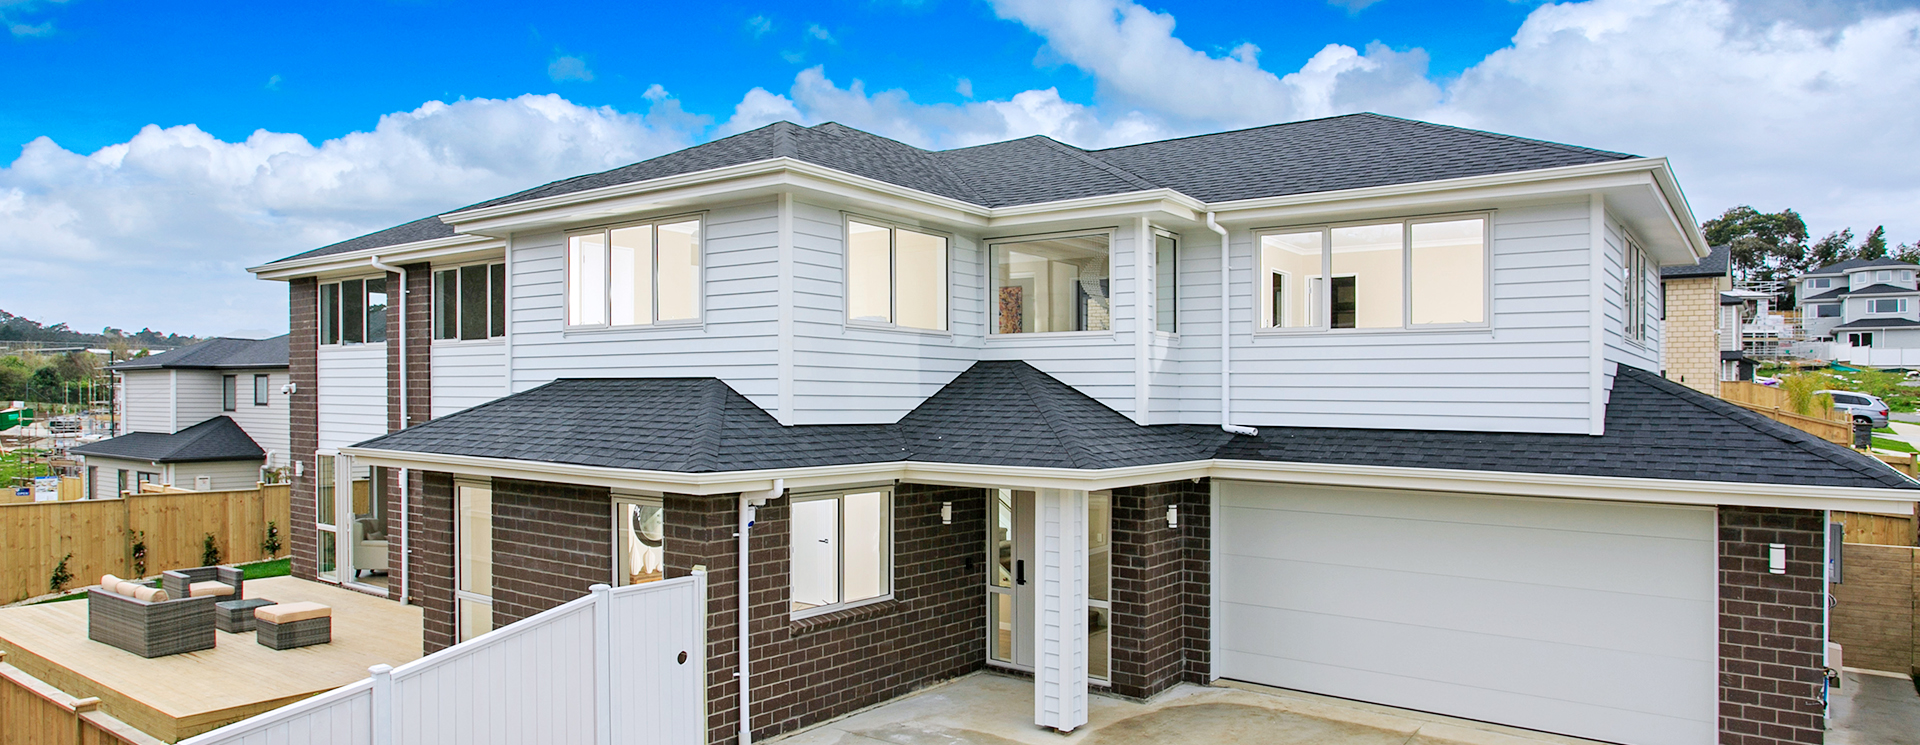 roof-painting-2 Exterior Painting Increases the Value of your home in Auckland